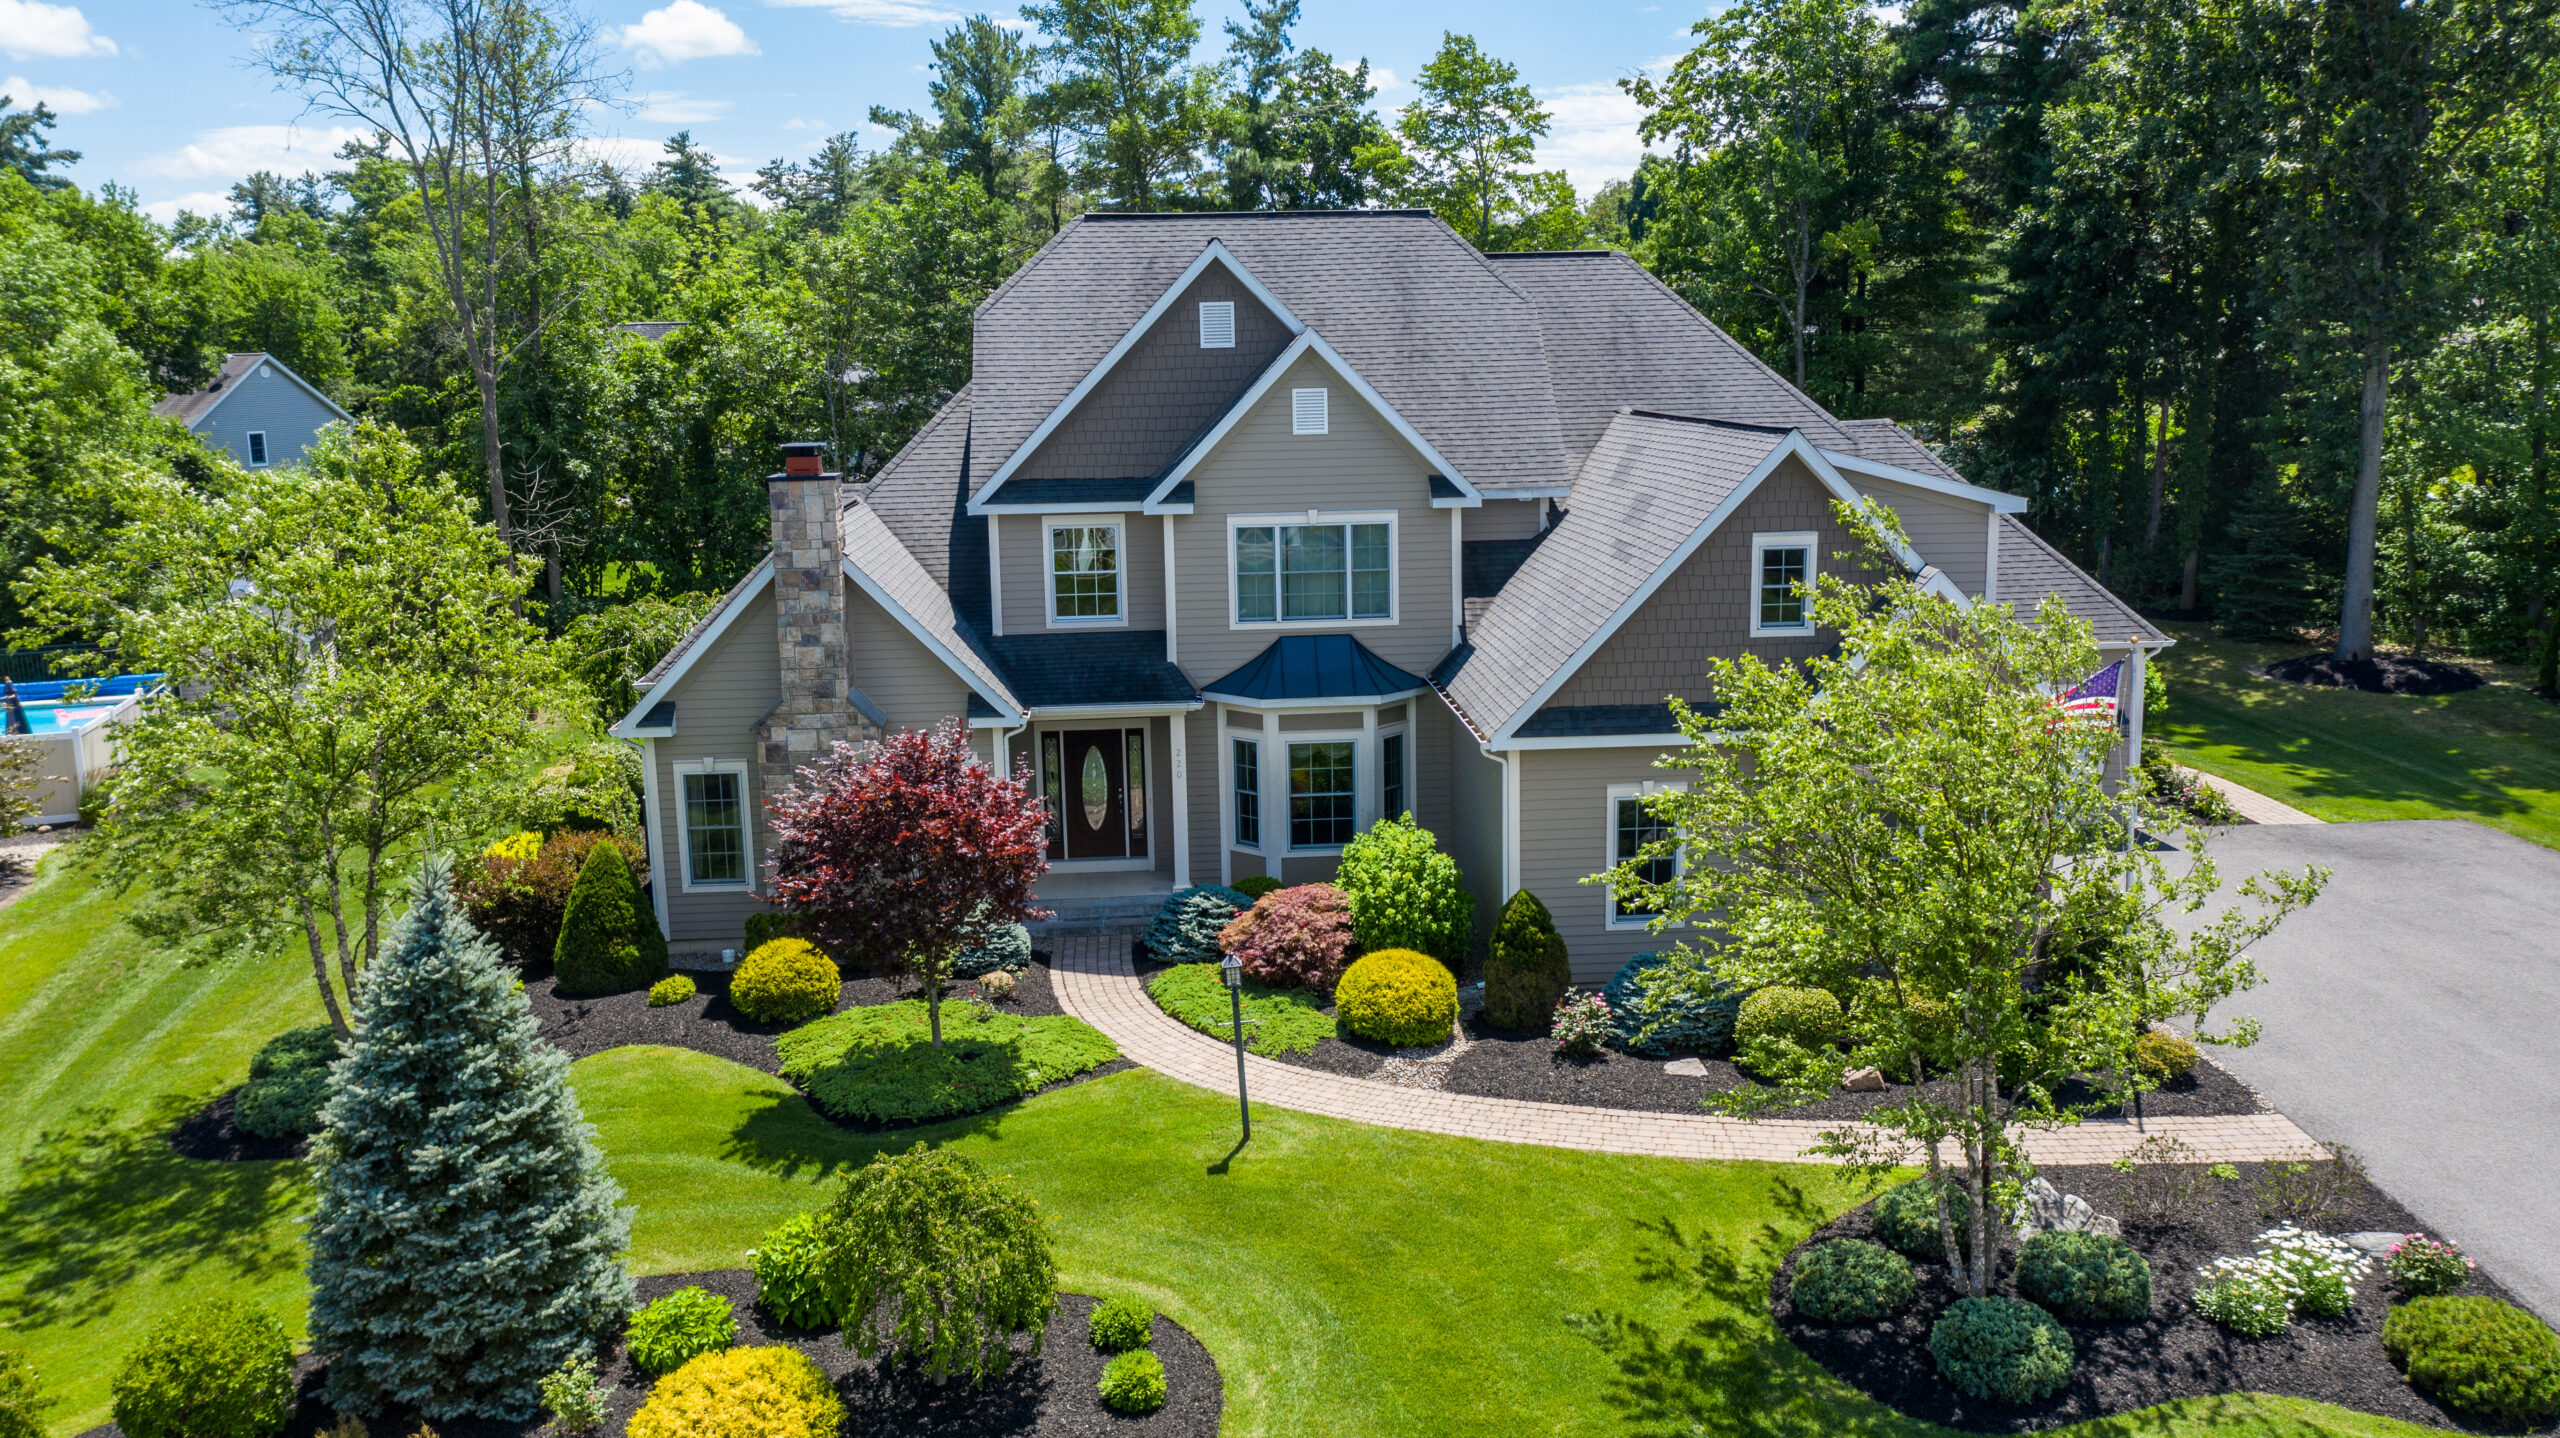 220 Brittany Place - Full Res -0486